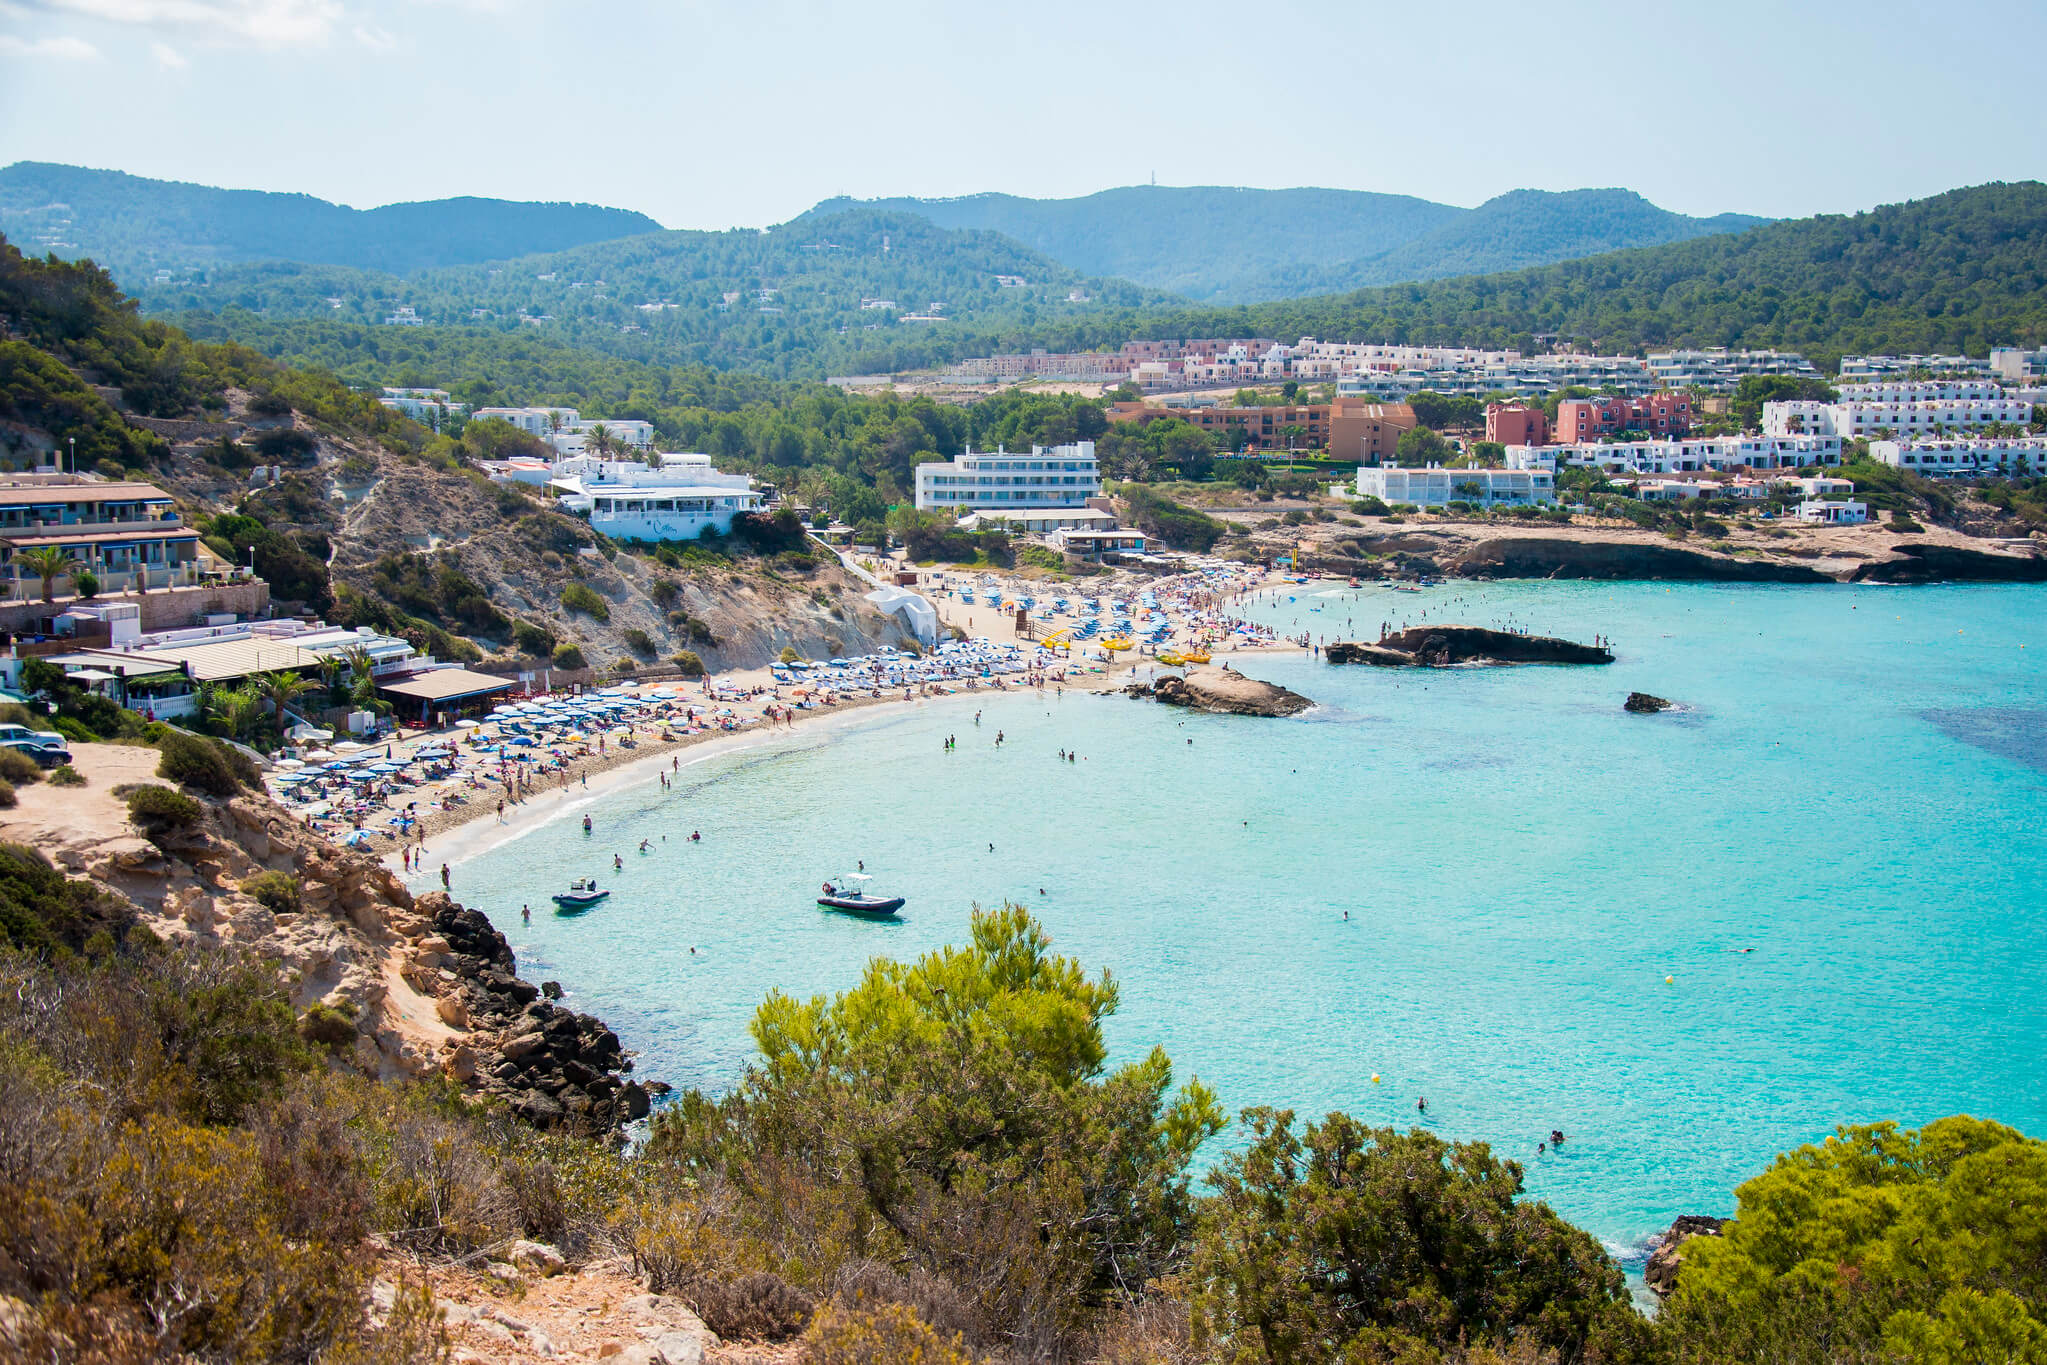 https://www.white-ibiza.com/wp-content/uploads/2020/03/ibiza-beaches-cala-tarida-01.jpg